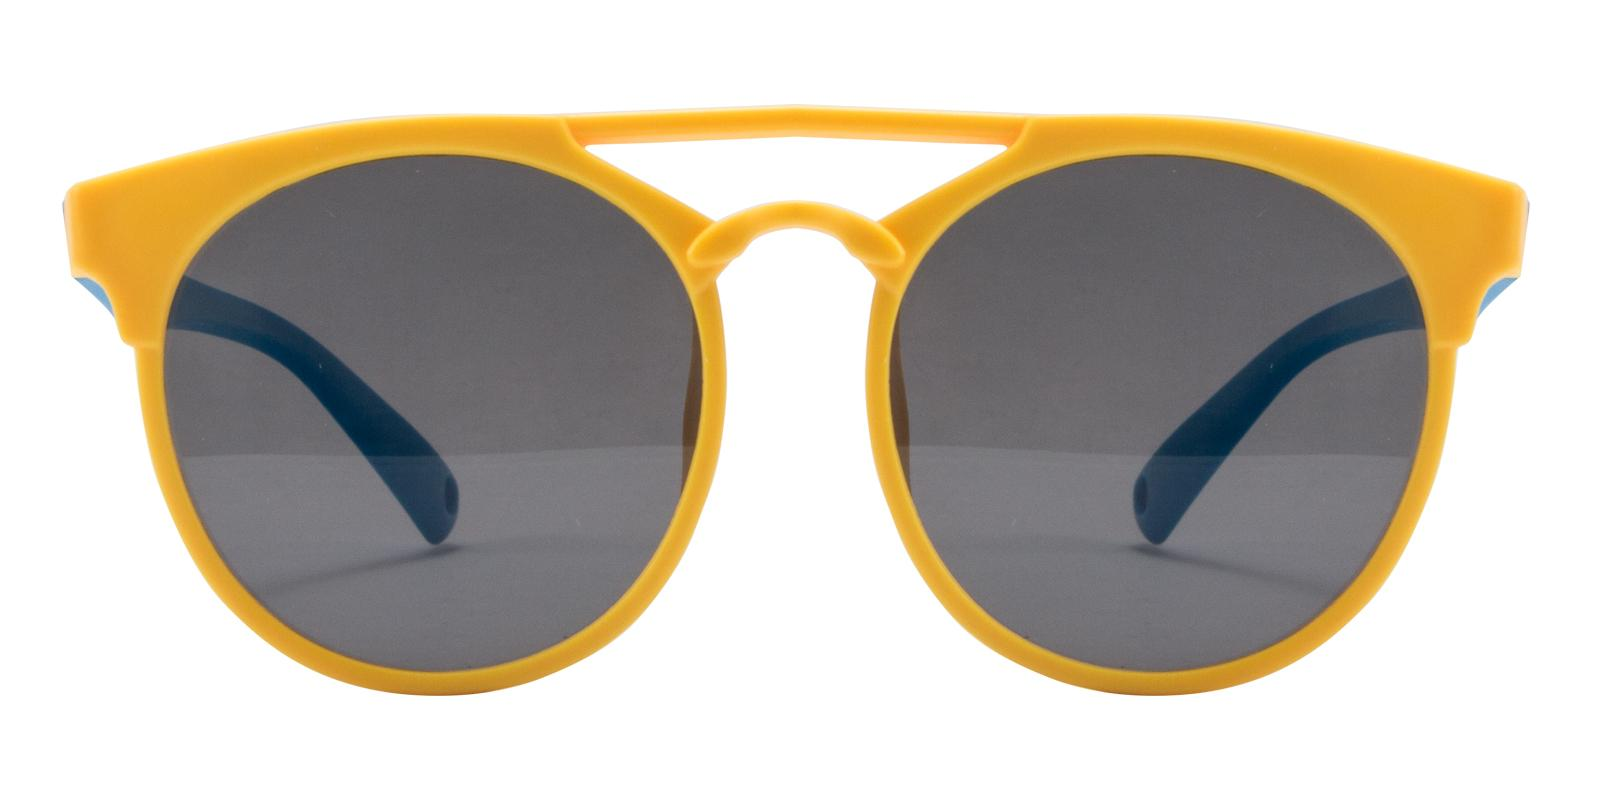 Hydra Yellow TR Sunglasses Frames from ABBE Glasses